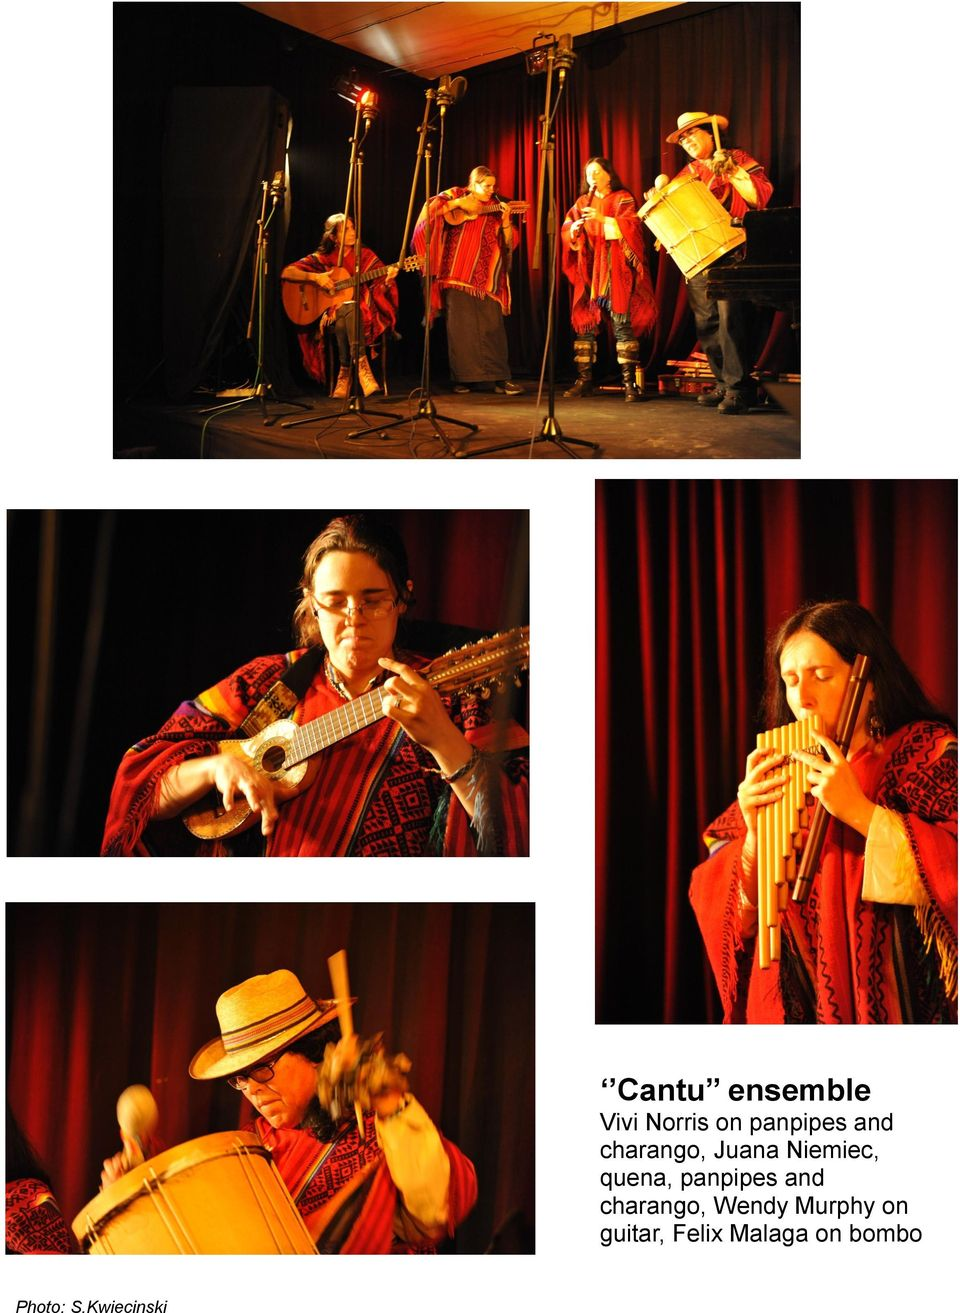 panpipes and charango, Wendy Murphy on